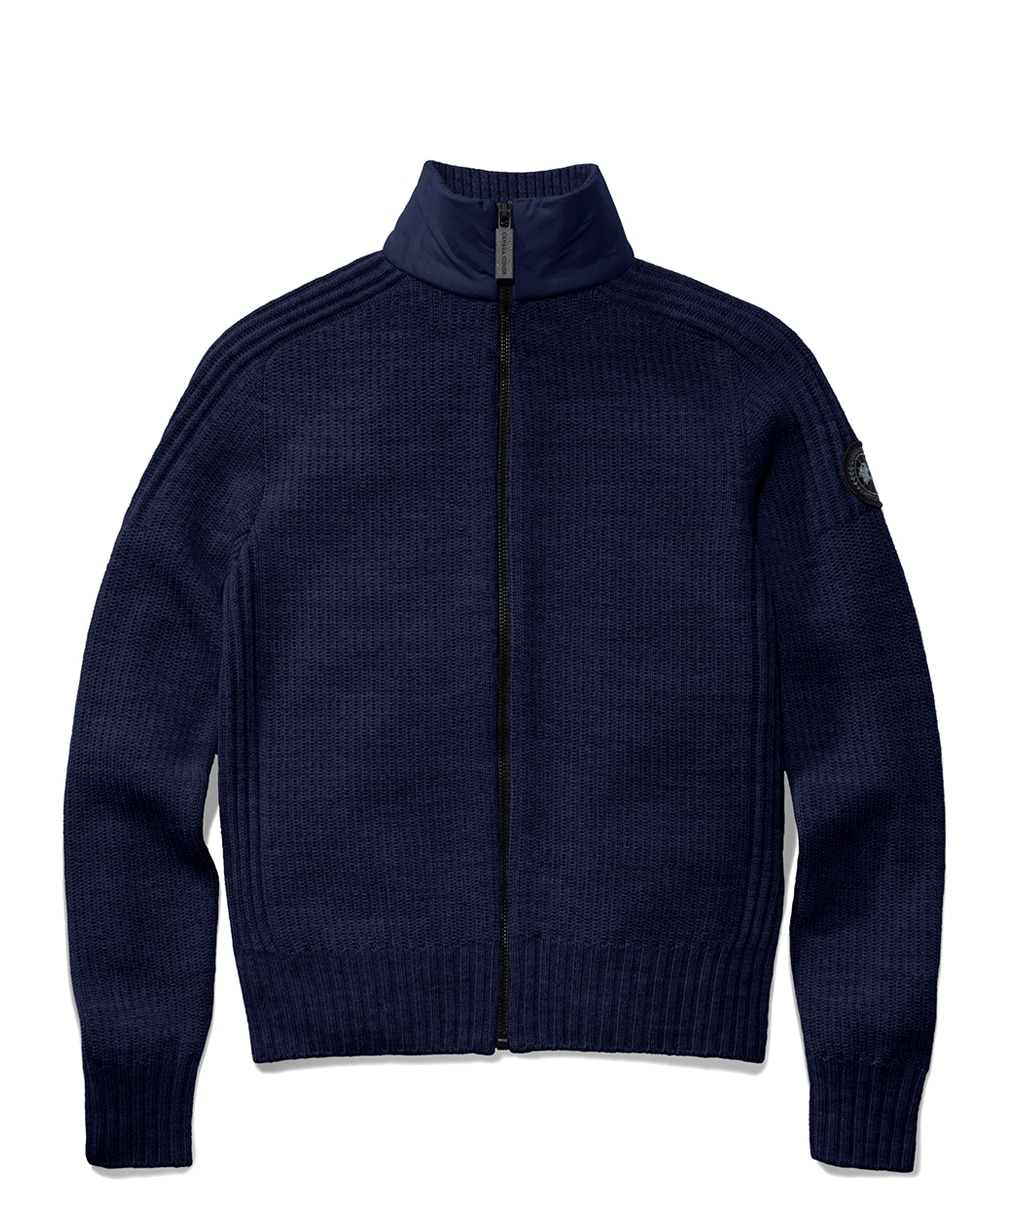 FULFORD SWEATER